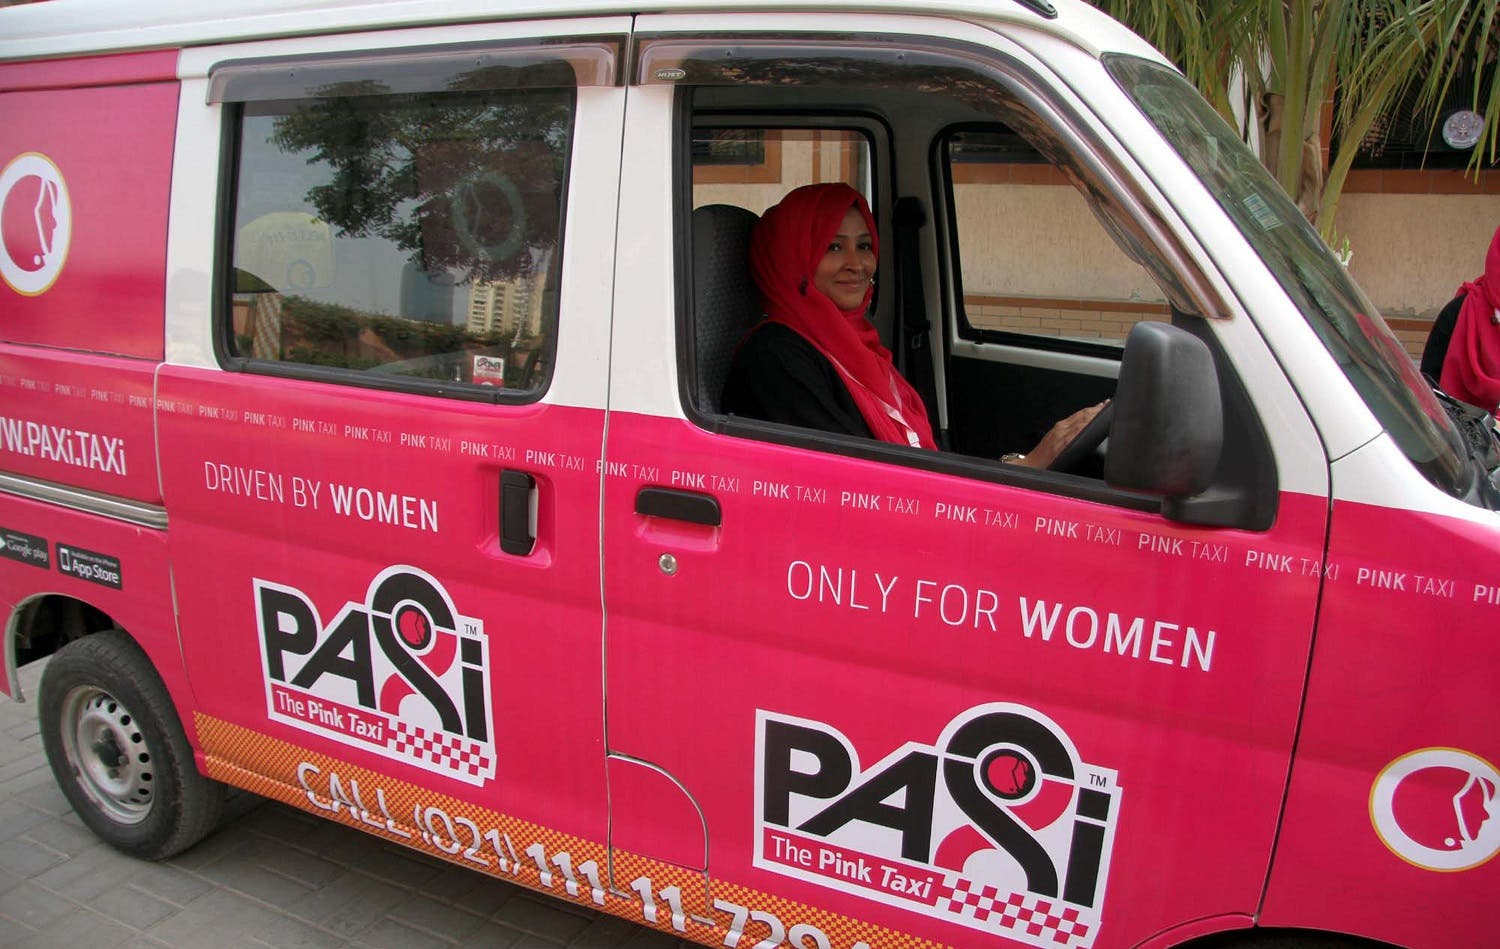 Sheikh said the Pink Taxi service would be extended to the cities of Lahore and Islamabad in the next three to four months, followed by other parts of the country. (Shutterstock)